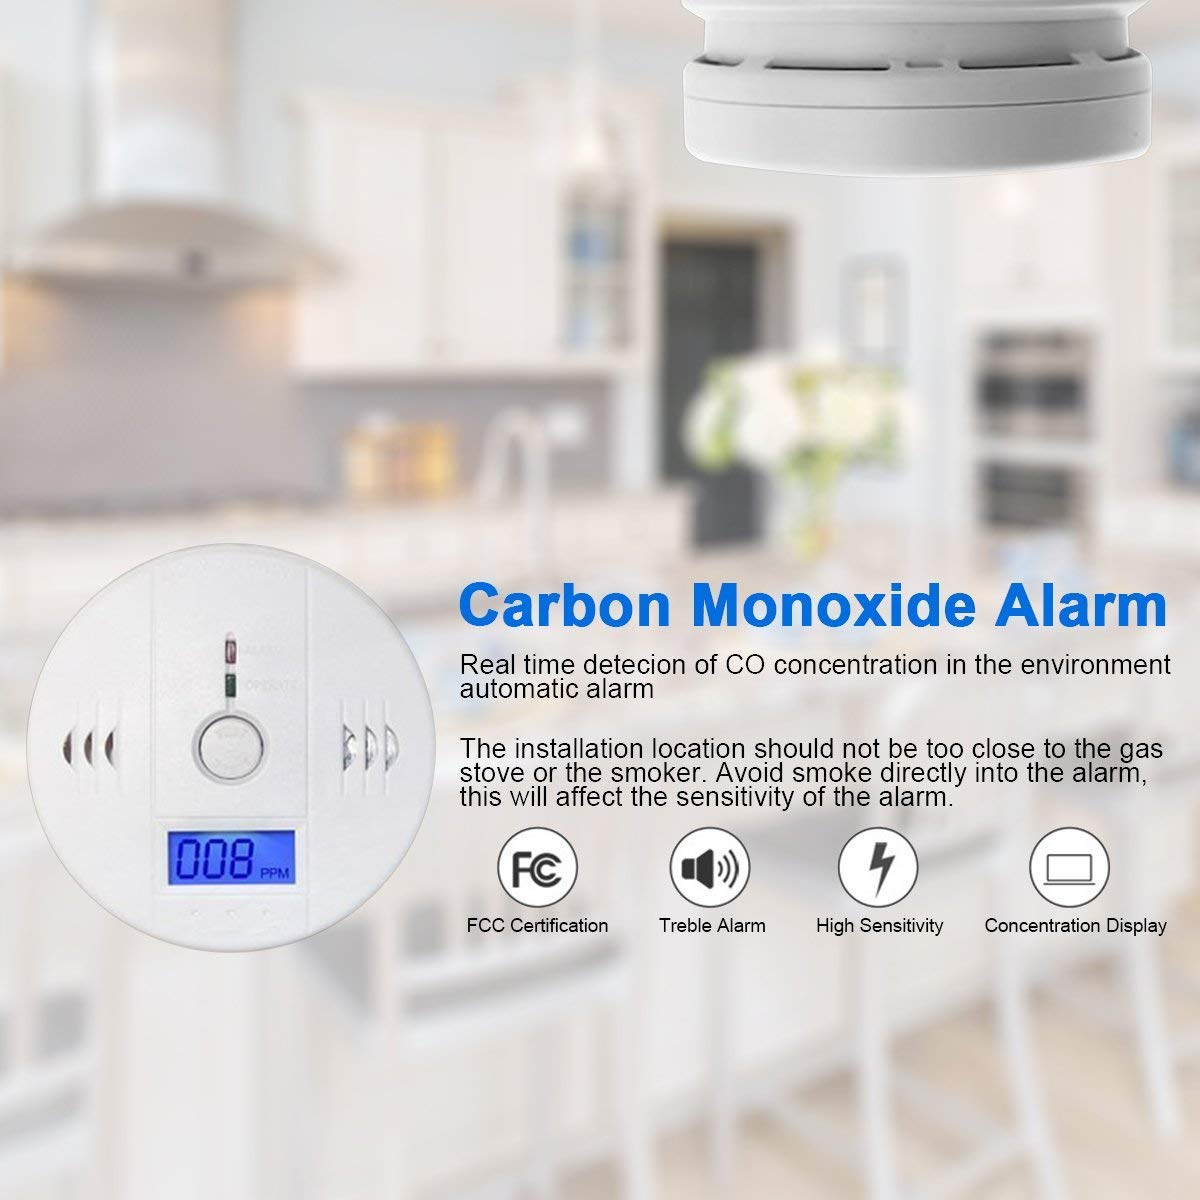 Carbon Monoxide Gas Detection,Digital Display Carbon Monoxide Alarm, Electronic Equipment, Firstbuy Power Detection Equipment, Alarm Clock Warning, White